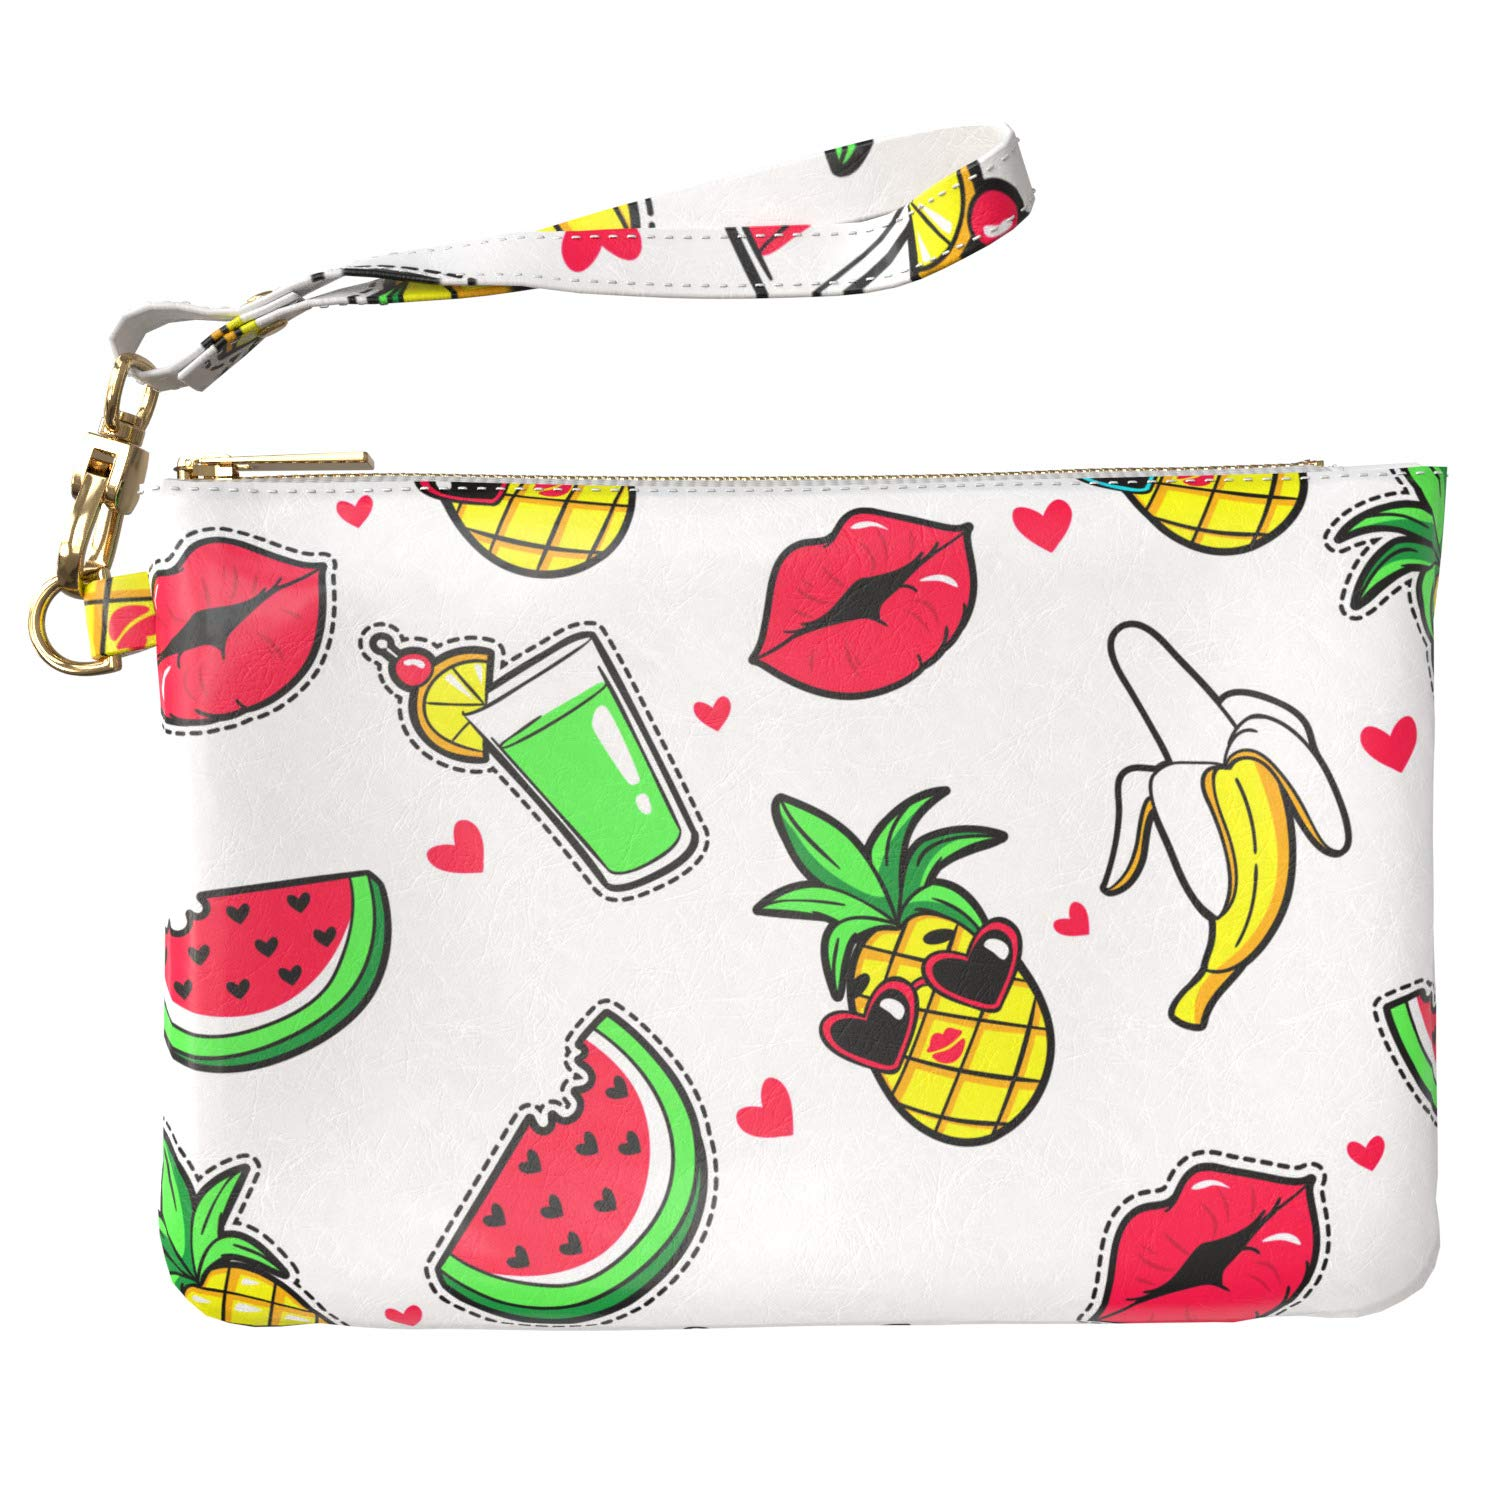 Cavka Makeup Bag 9.5 x 6 inch Purse Pouch Portable Organizer Design Bright Fruits Funny Strap Accessories Tropical Watermelon Storage Glam Print PU Leather Toiletry Zipper Travel Case Cosmetic Lips